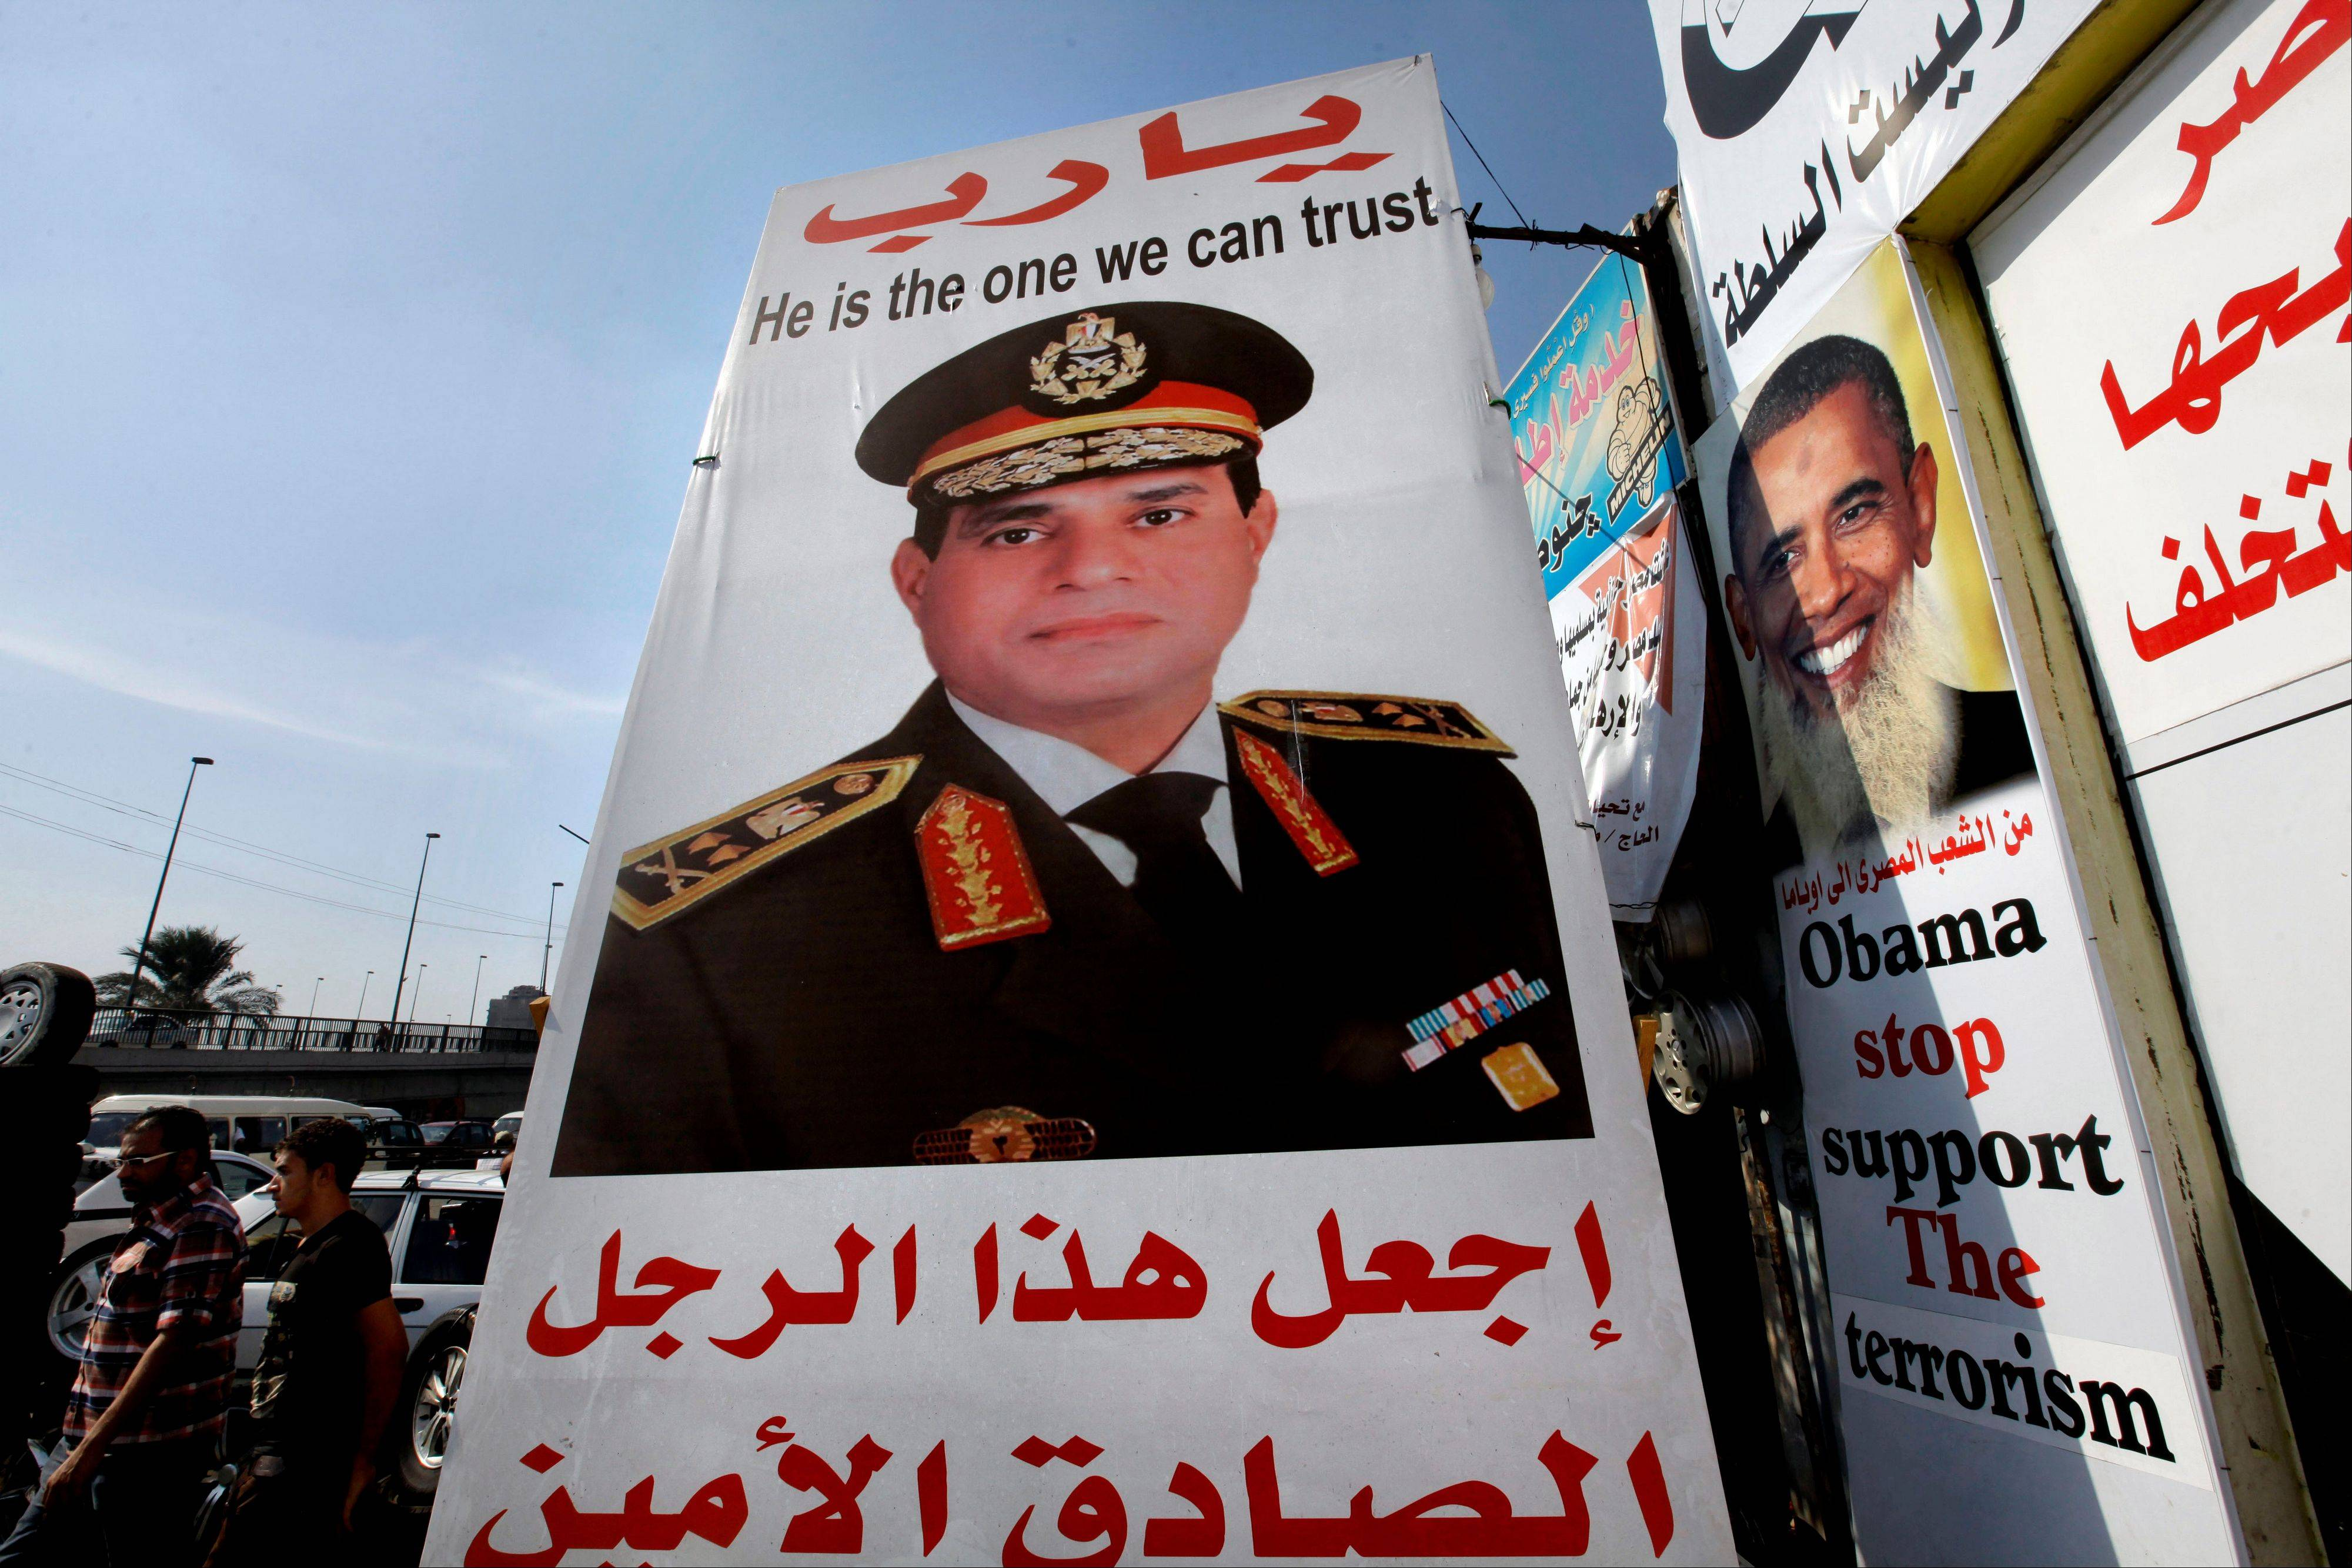 "Egyptians walk behind a banner supporting Egyptian Army Chief Lt. Gen. Abdel-Fattah el-Sissi, center, with Arabic that reads, ""God, keep this truthful honest man,"" in Cairo, Egypt, Monday, Aug. 5, 2013. More than a month after Morsi's ouster, thousands of the Islamist leader's supporters remain camped out in two key squares in Cairo demanding his reinstatement. Egypt's military-backed interim leadership has issued a string of warnings for them to disperse or security forces will move in, setting the stage for a potential showdown."